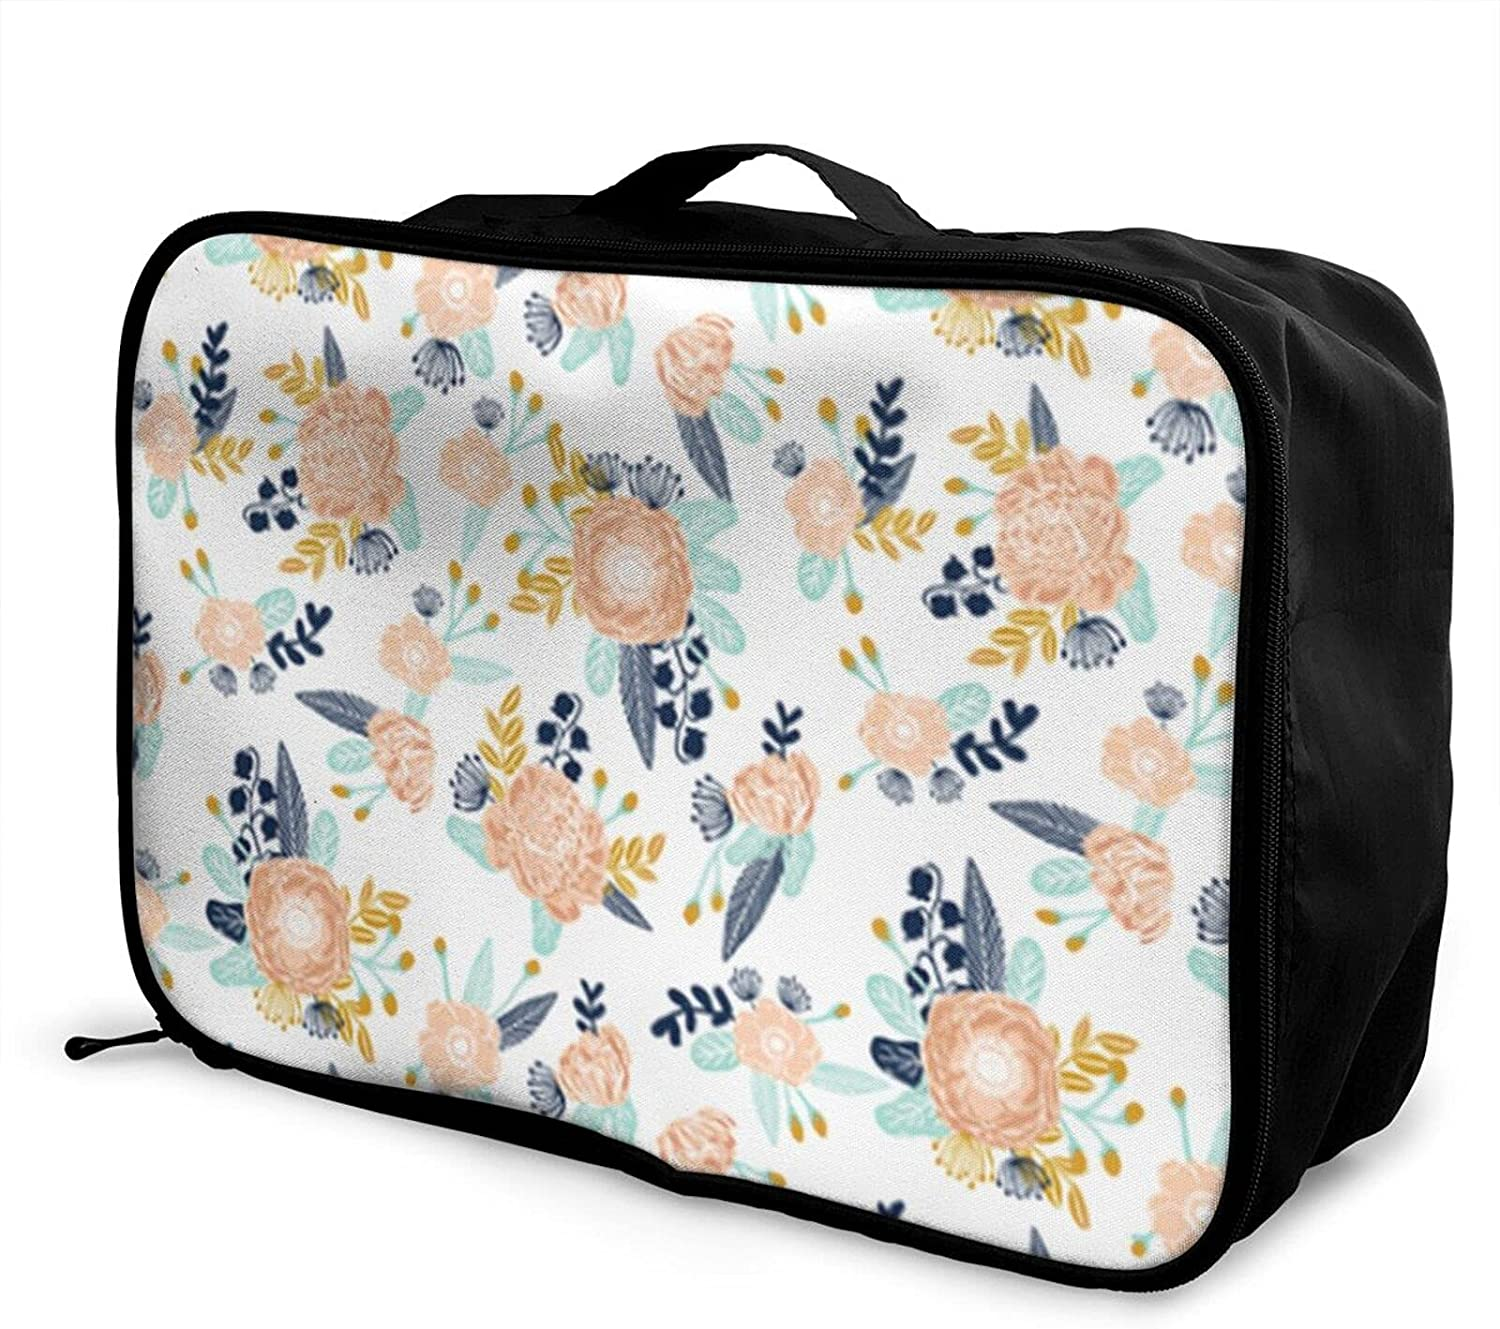 Foldable Travel Bag Tote Albuquerque Mall Florals Very popular Blue Peach Carry-On Navy D